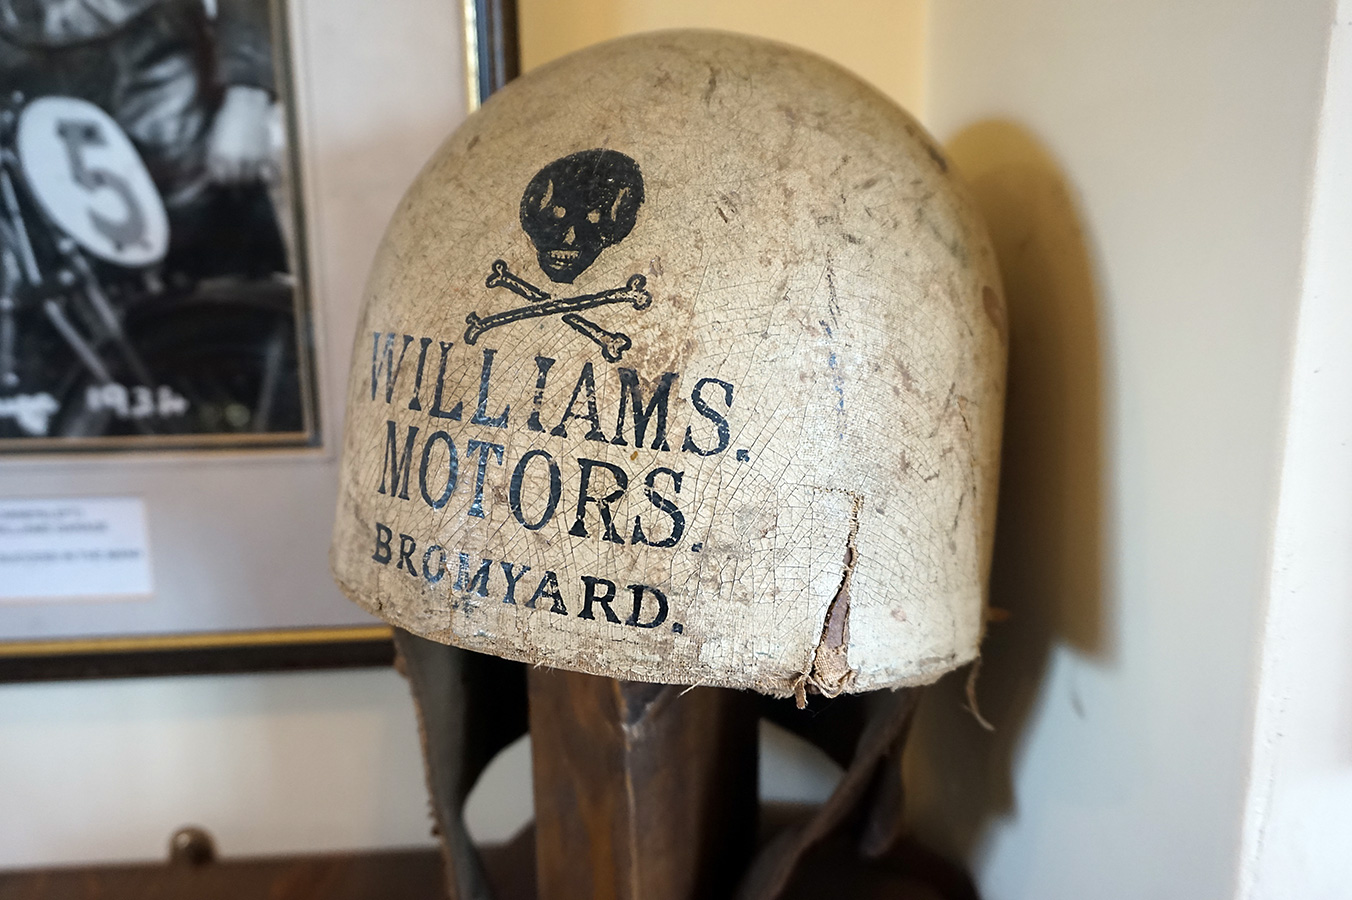 Williams Motors motorcycle helmet